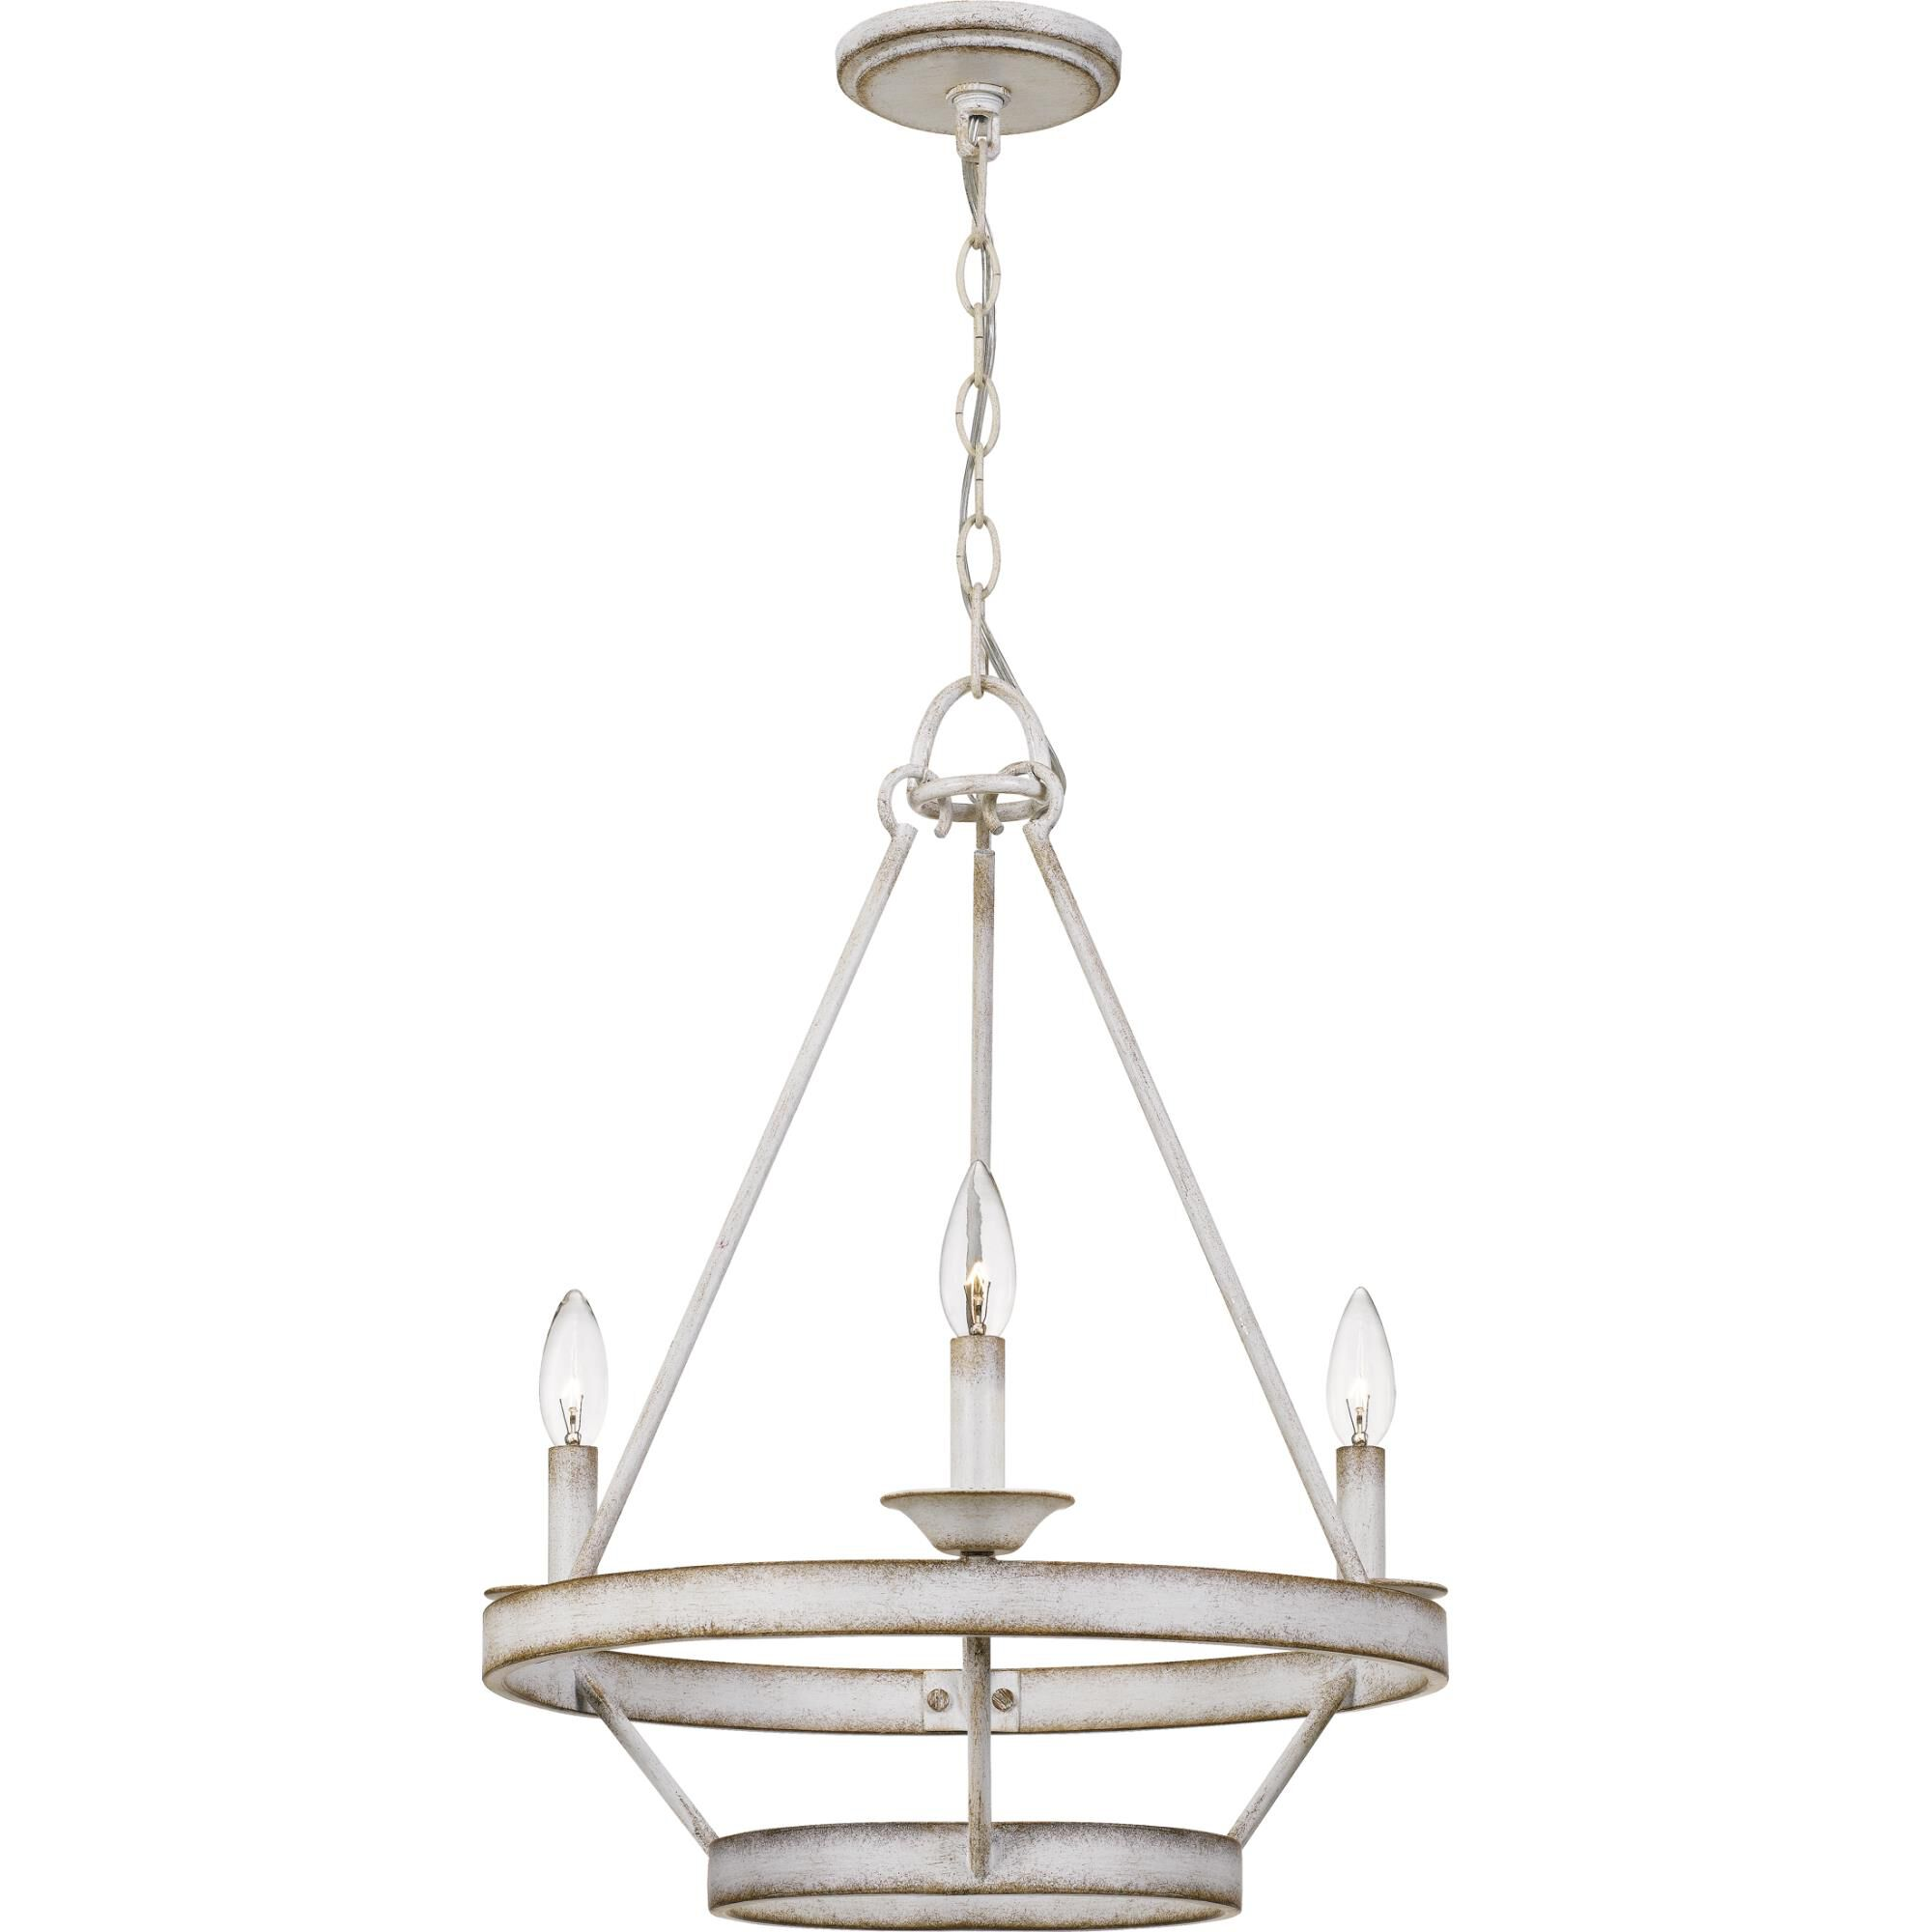 Quoizel Corral 19 Inch 3 Light Mini Chandelier Corral - Crl5003awh - Transitional